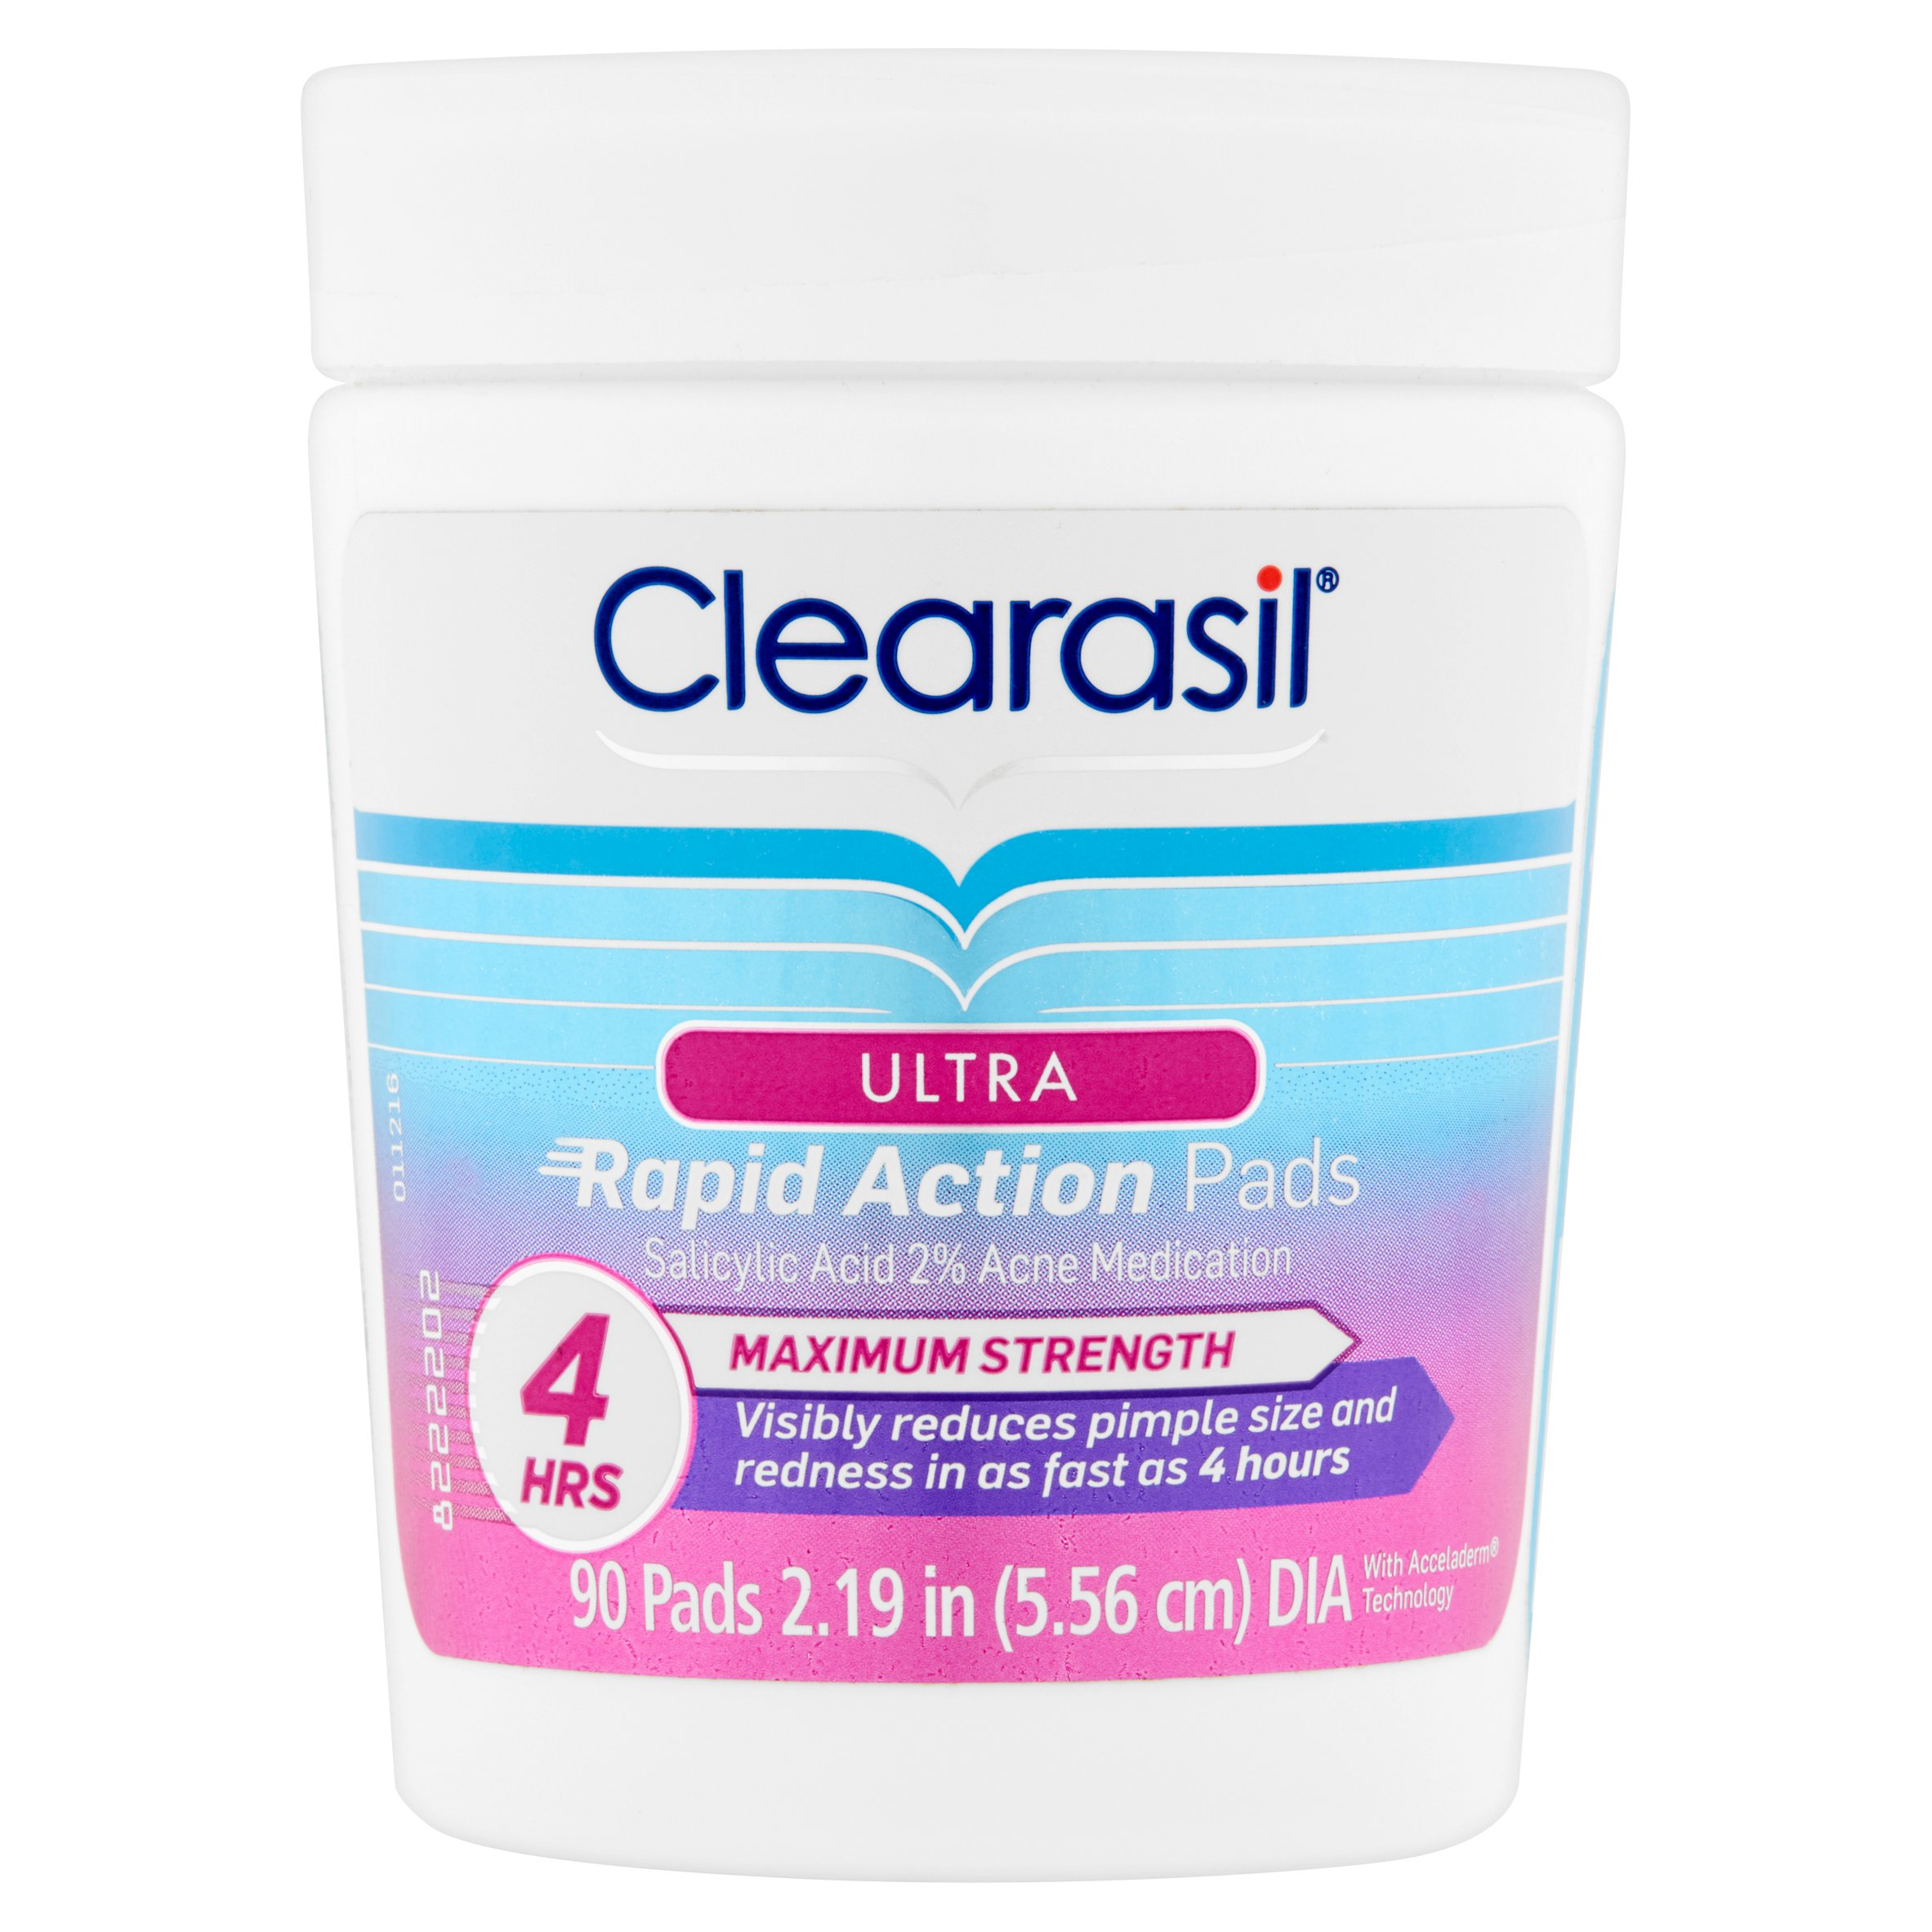 Clearasil Maximum Strength Ultra Rapid Action Pads, 90 count